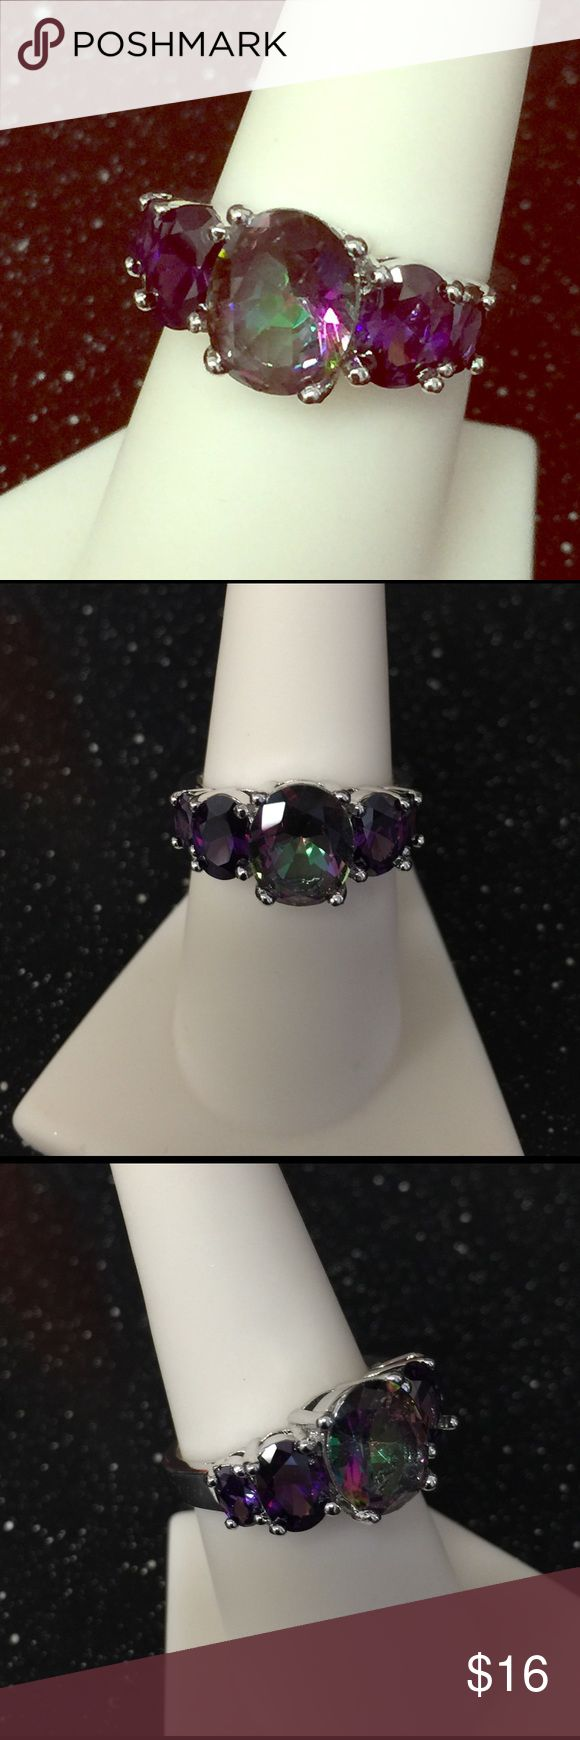 .🌷MAY SALE 🌷.925 Mystic Topaz sz 7 NEW *Boutique item, liquidation. This is how I pass the savings on to you.  .925 Sterling Silver.  New. Jewelry Rings